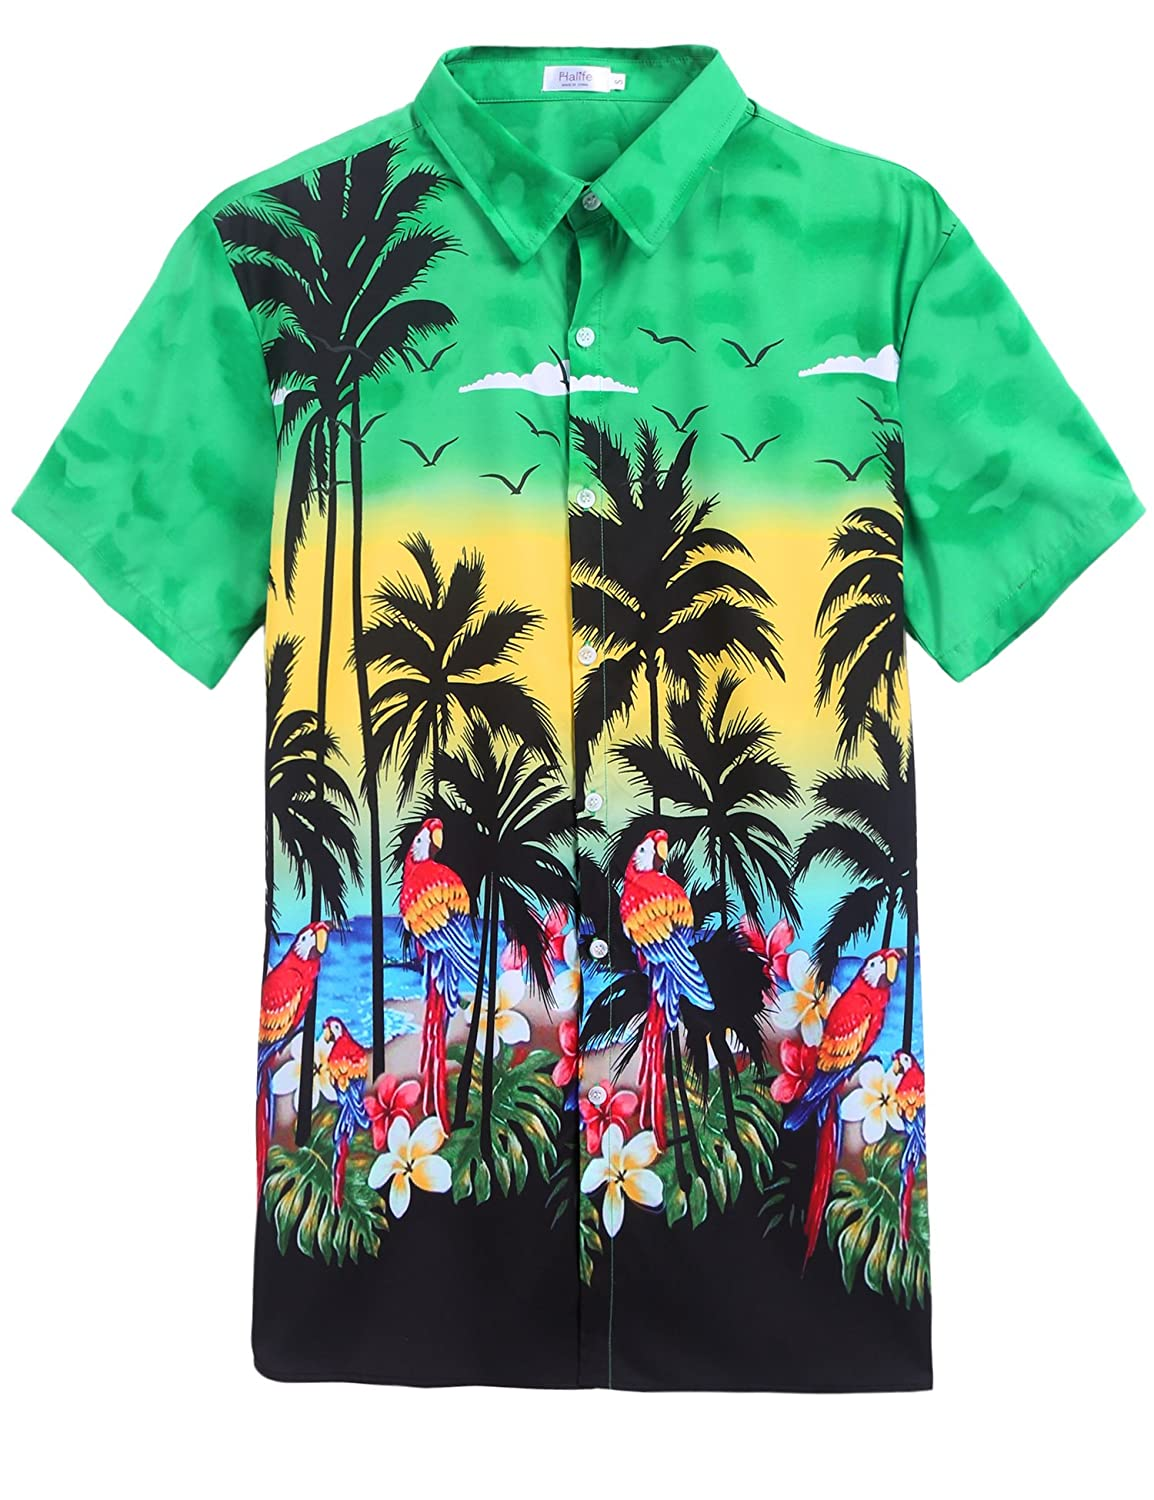 de3f1a186 ☛Beach hawaiian printed couples outfit ☛WHAT IT IS Price Just includes one men  shirt or one women dress ☛MULTI-PURPOSE USE If you and your hubby love ...